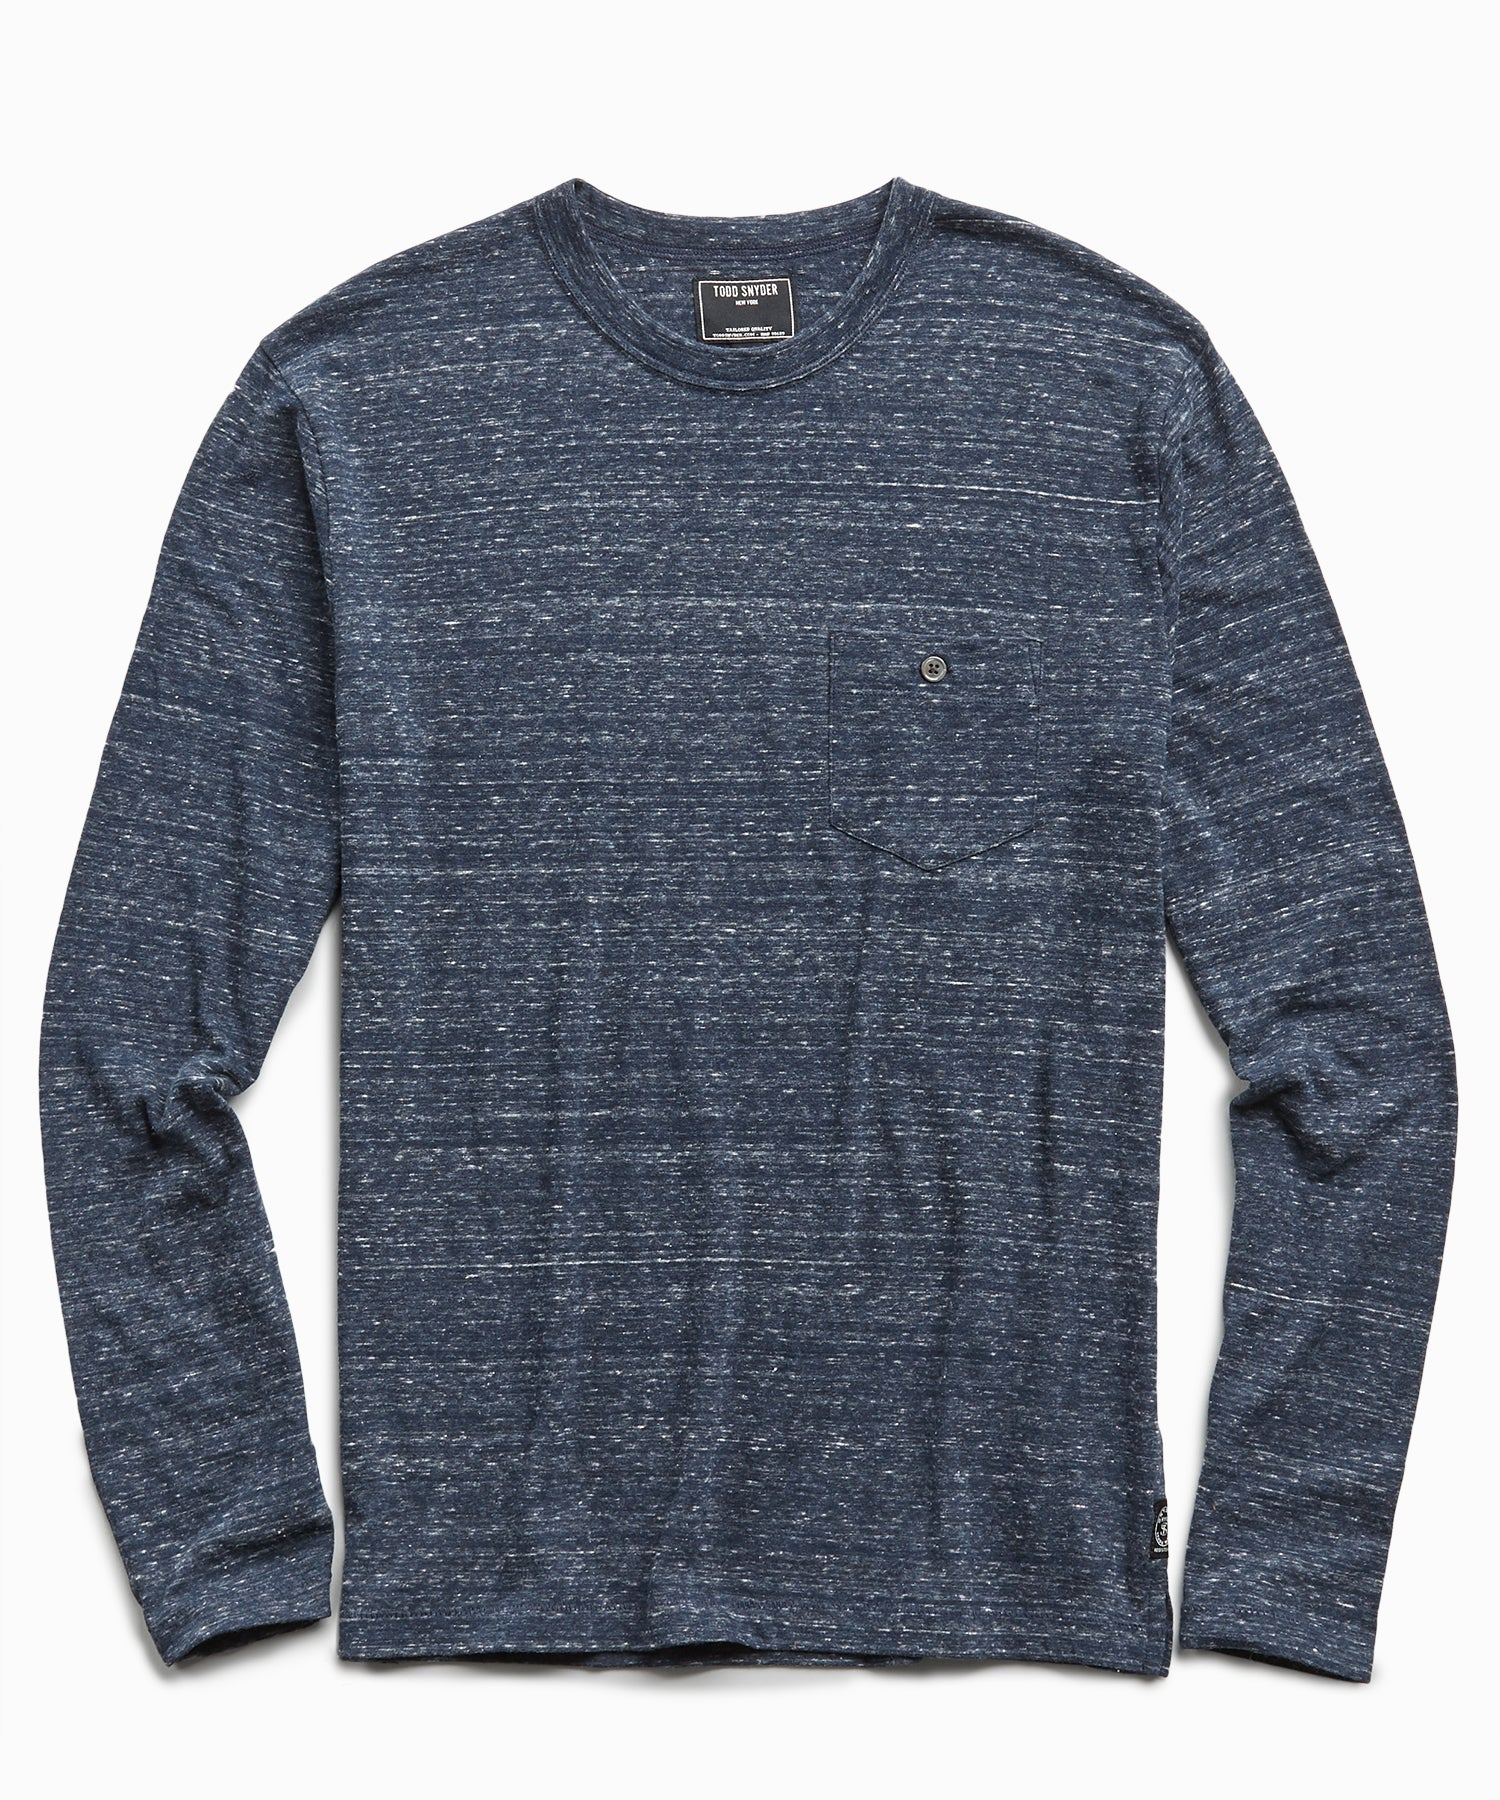 Long Sleeve Heather Tee in Original Navy